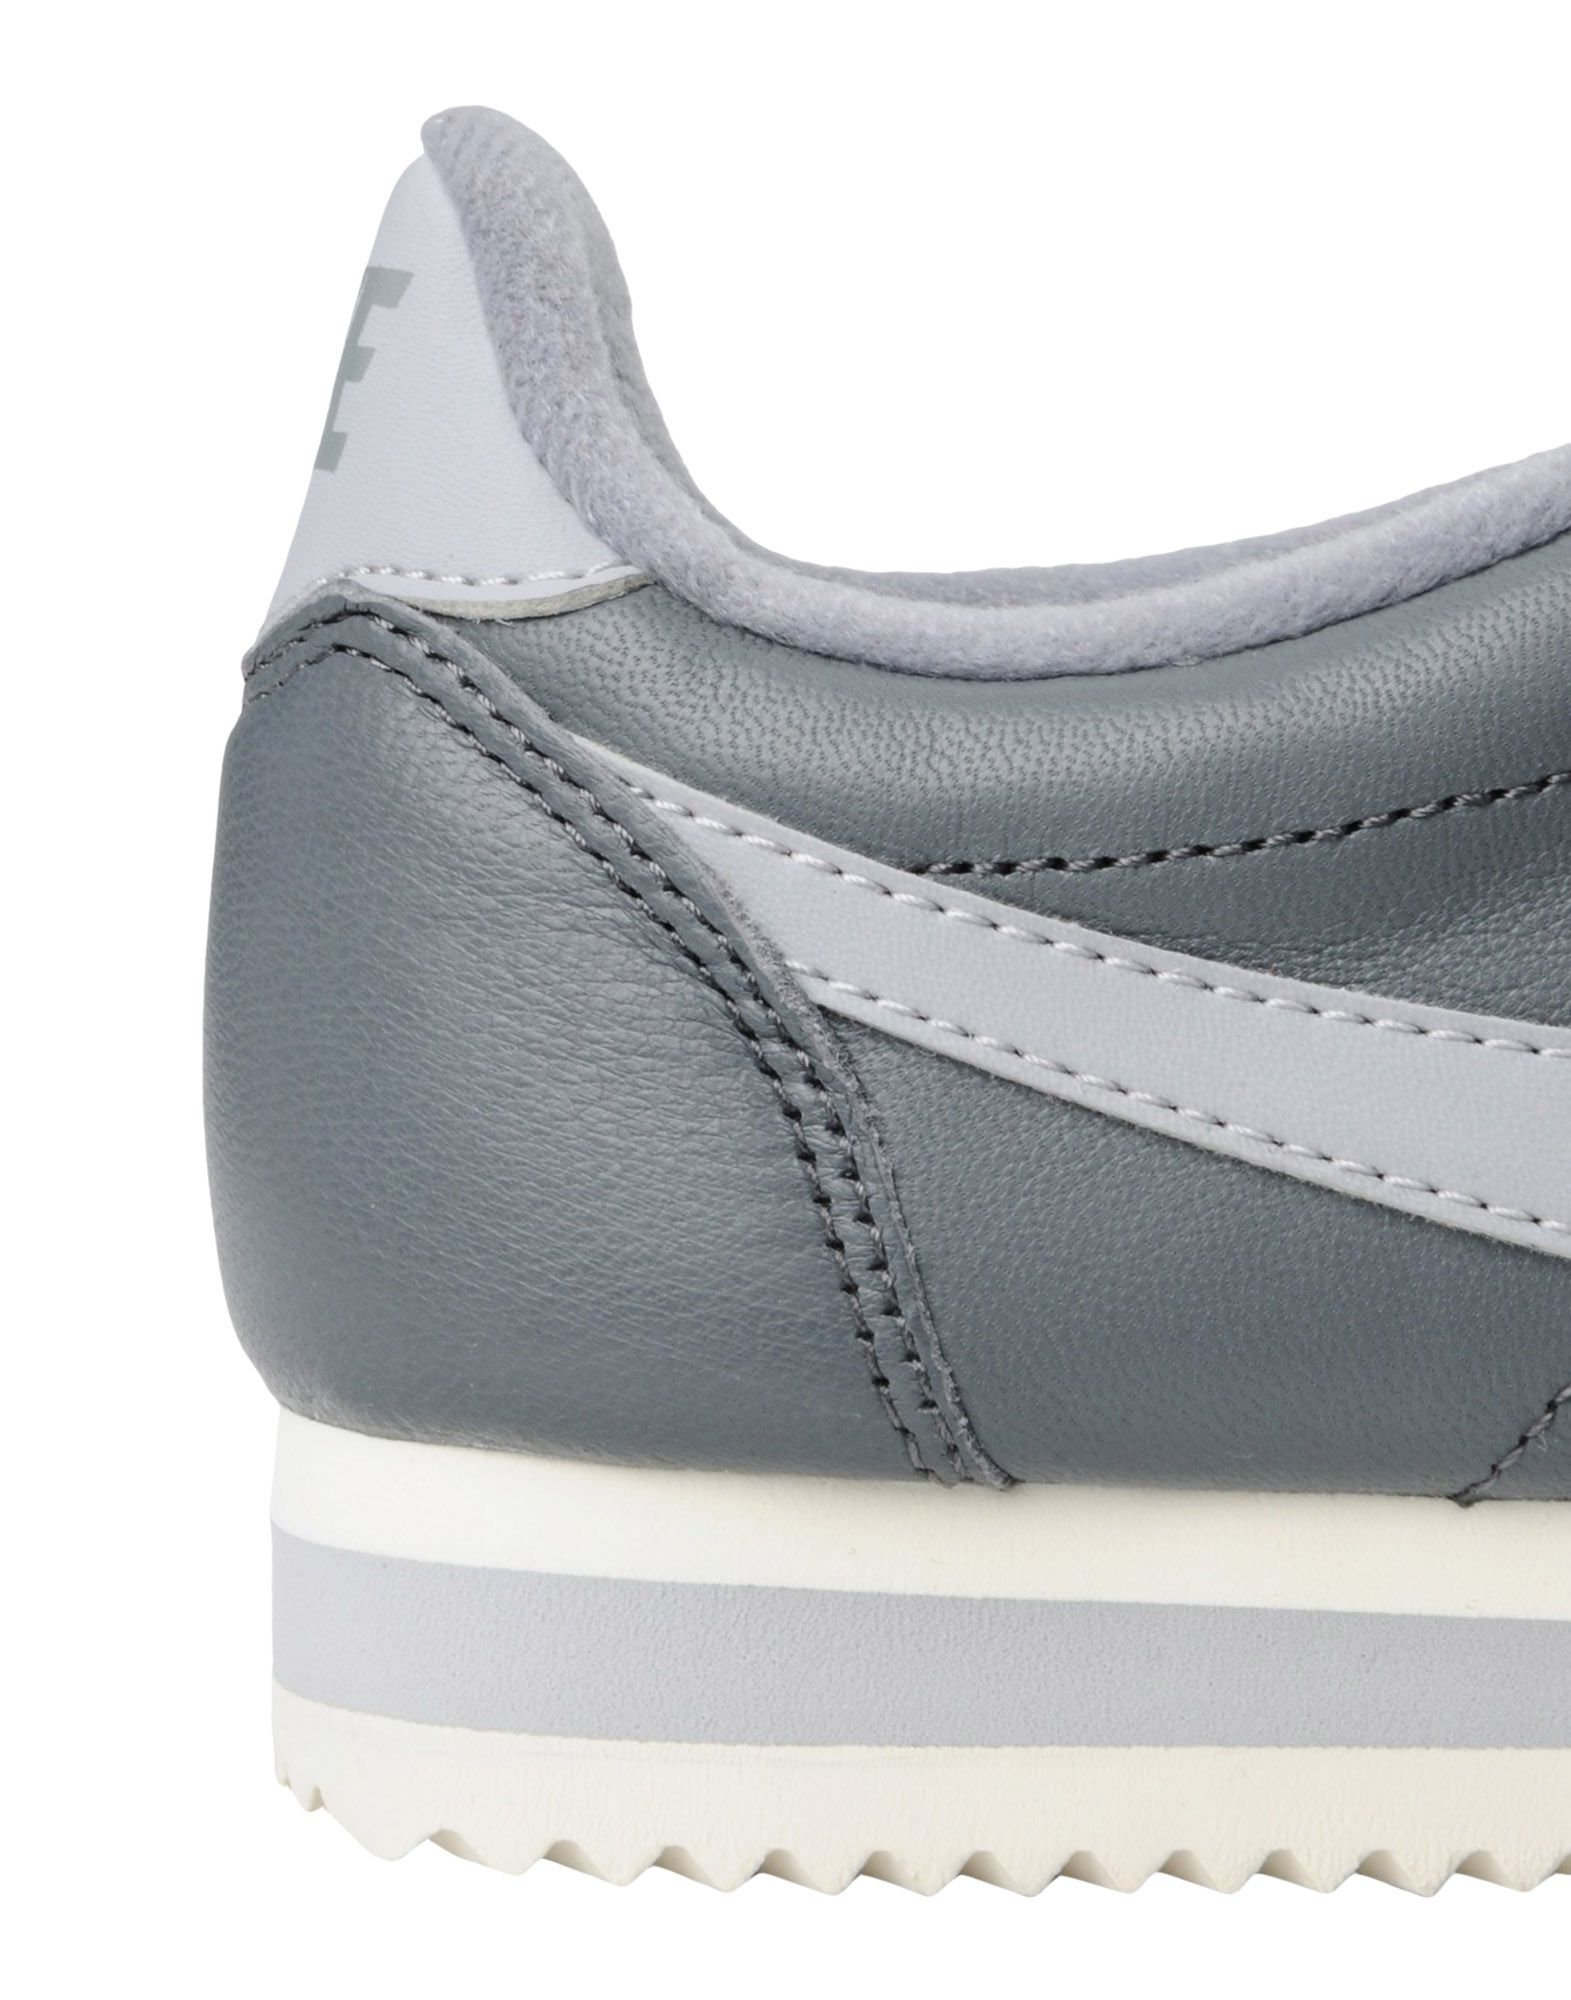 Sneakers Nike  Classic Cortez Leather Premium - Femme - Sneakers Nike sur